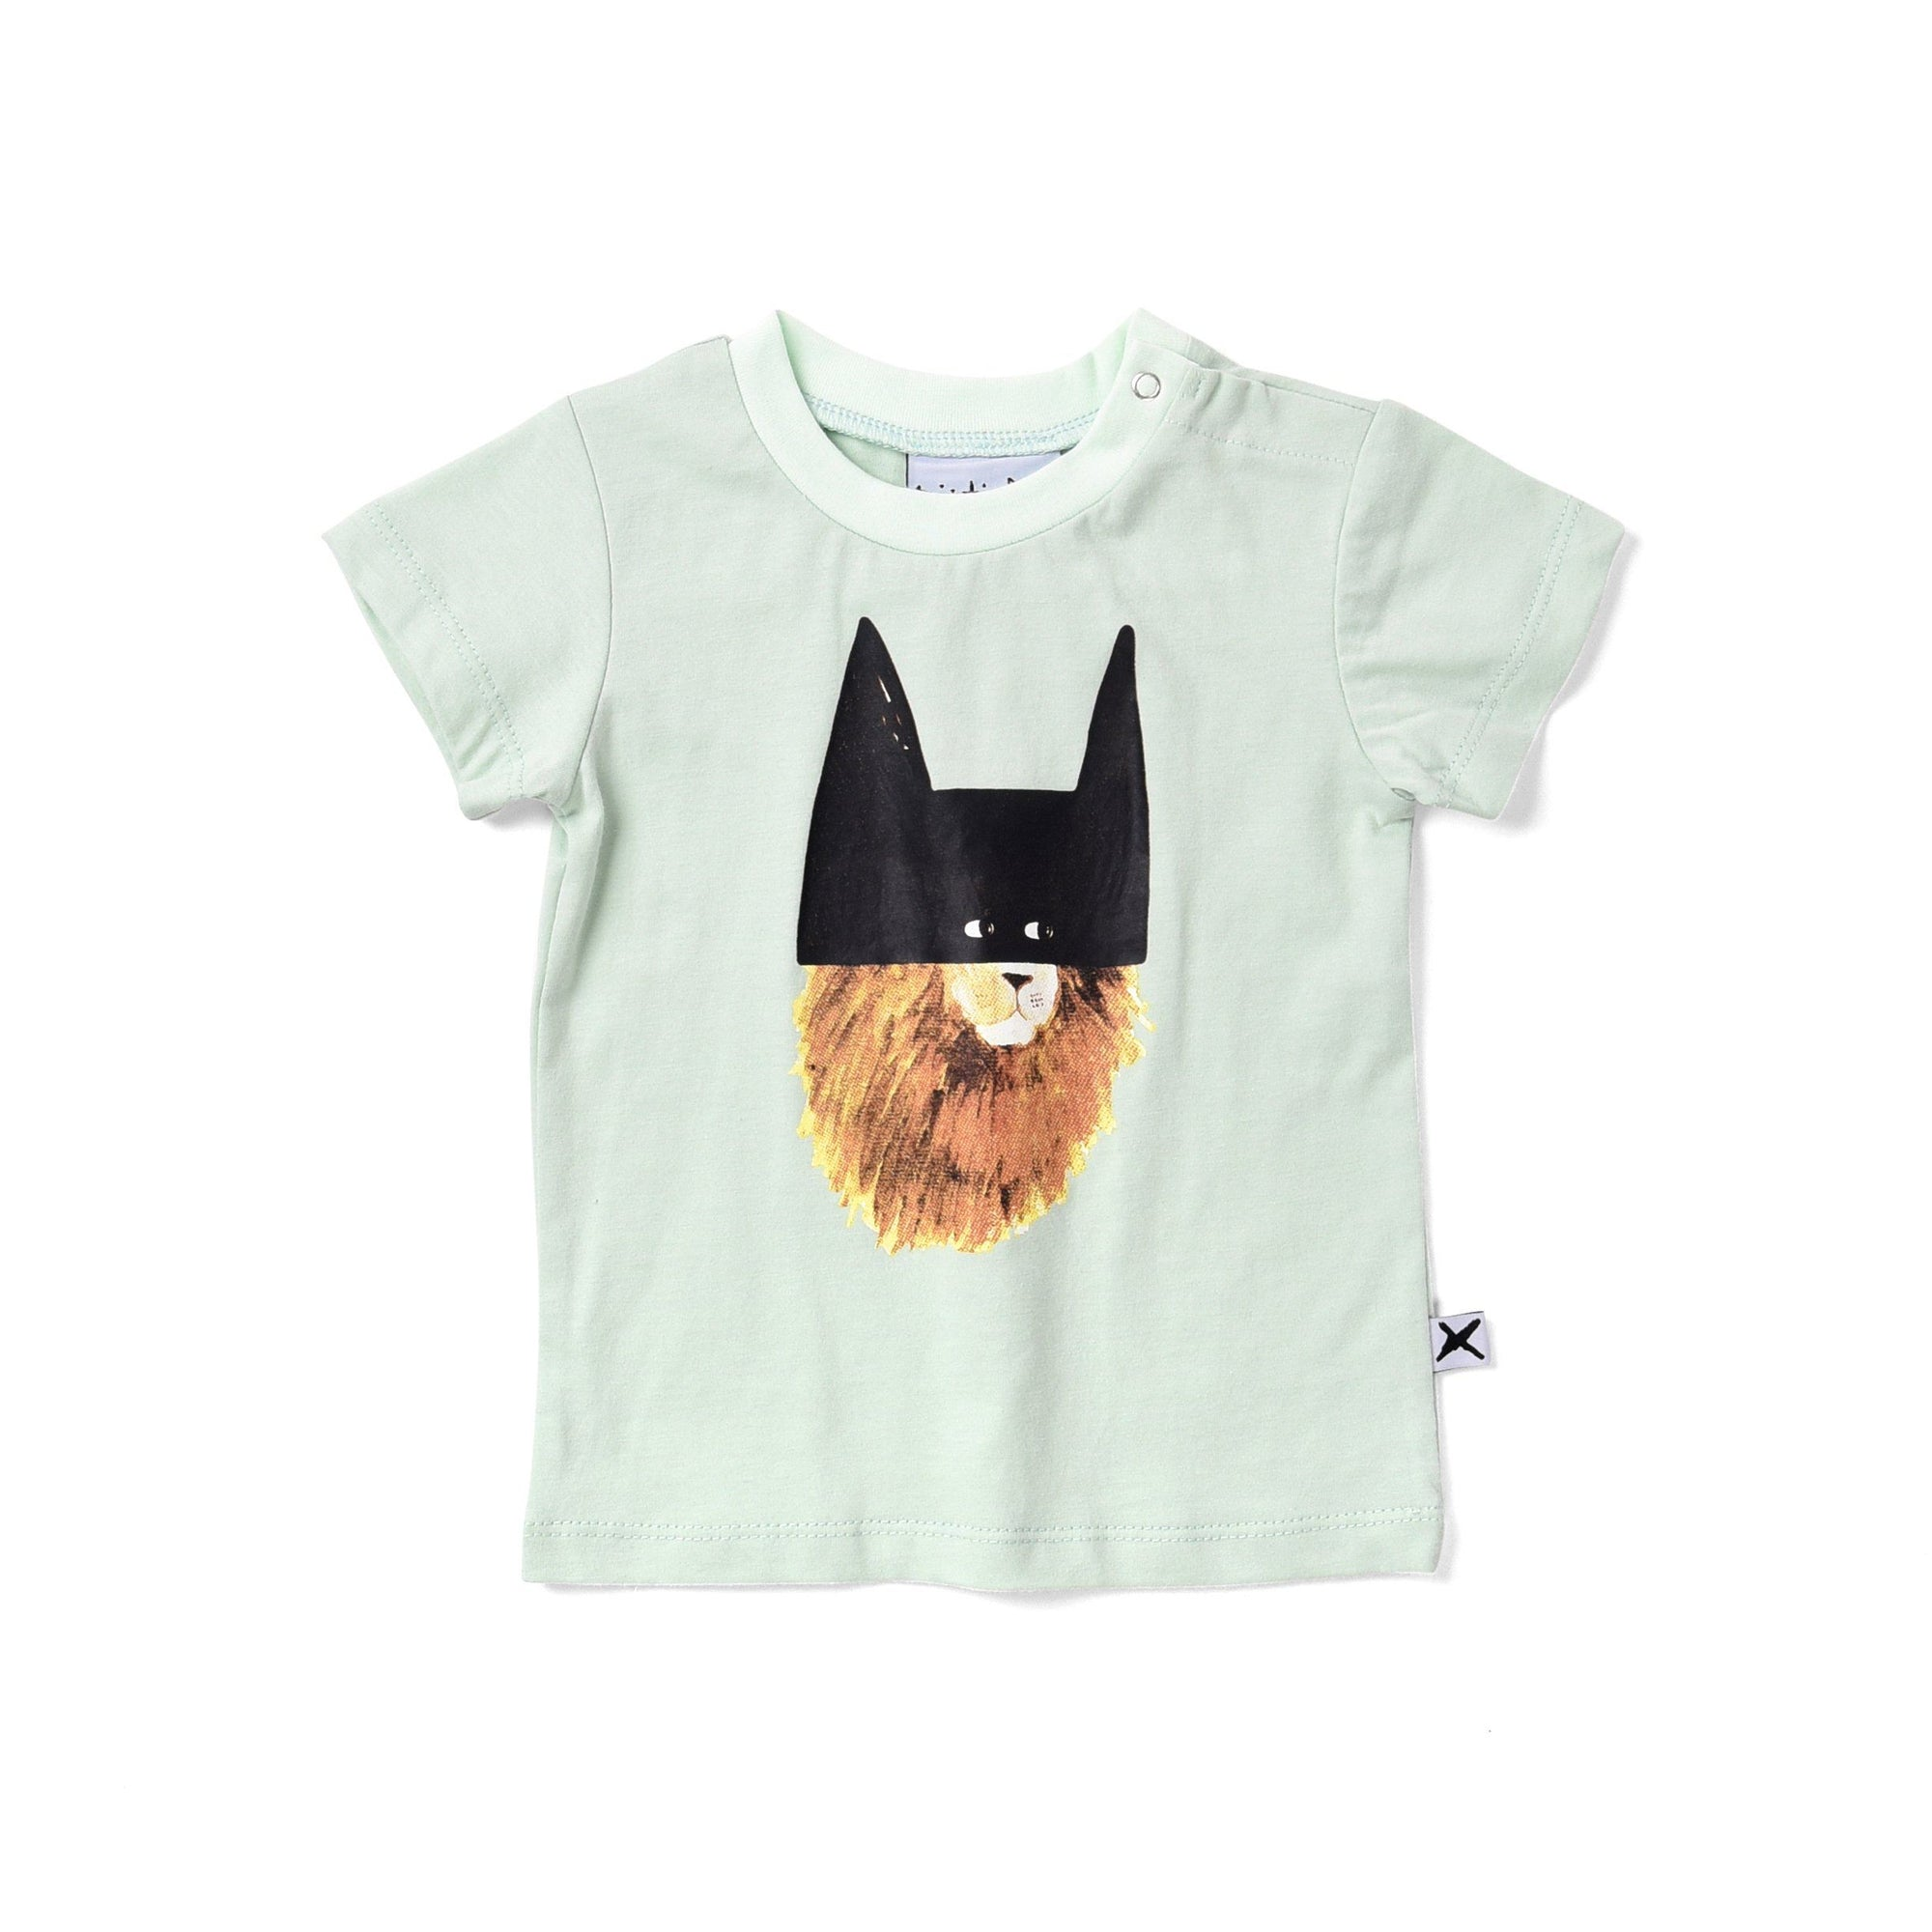 Stealth Lion Baby Tee